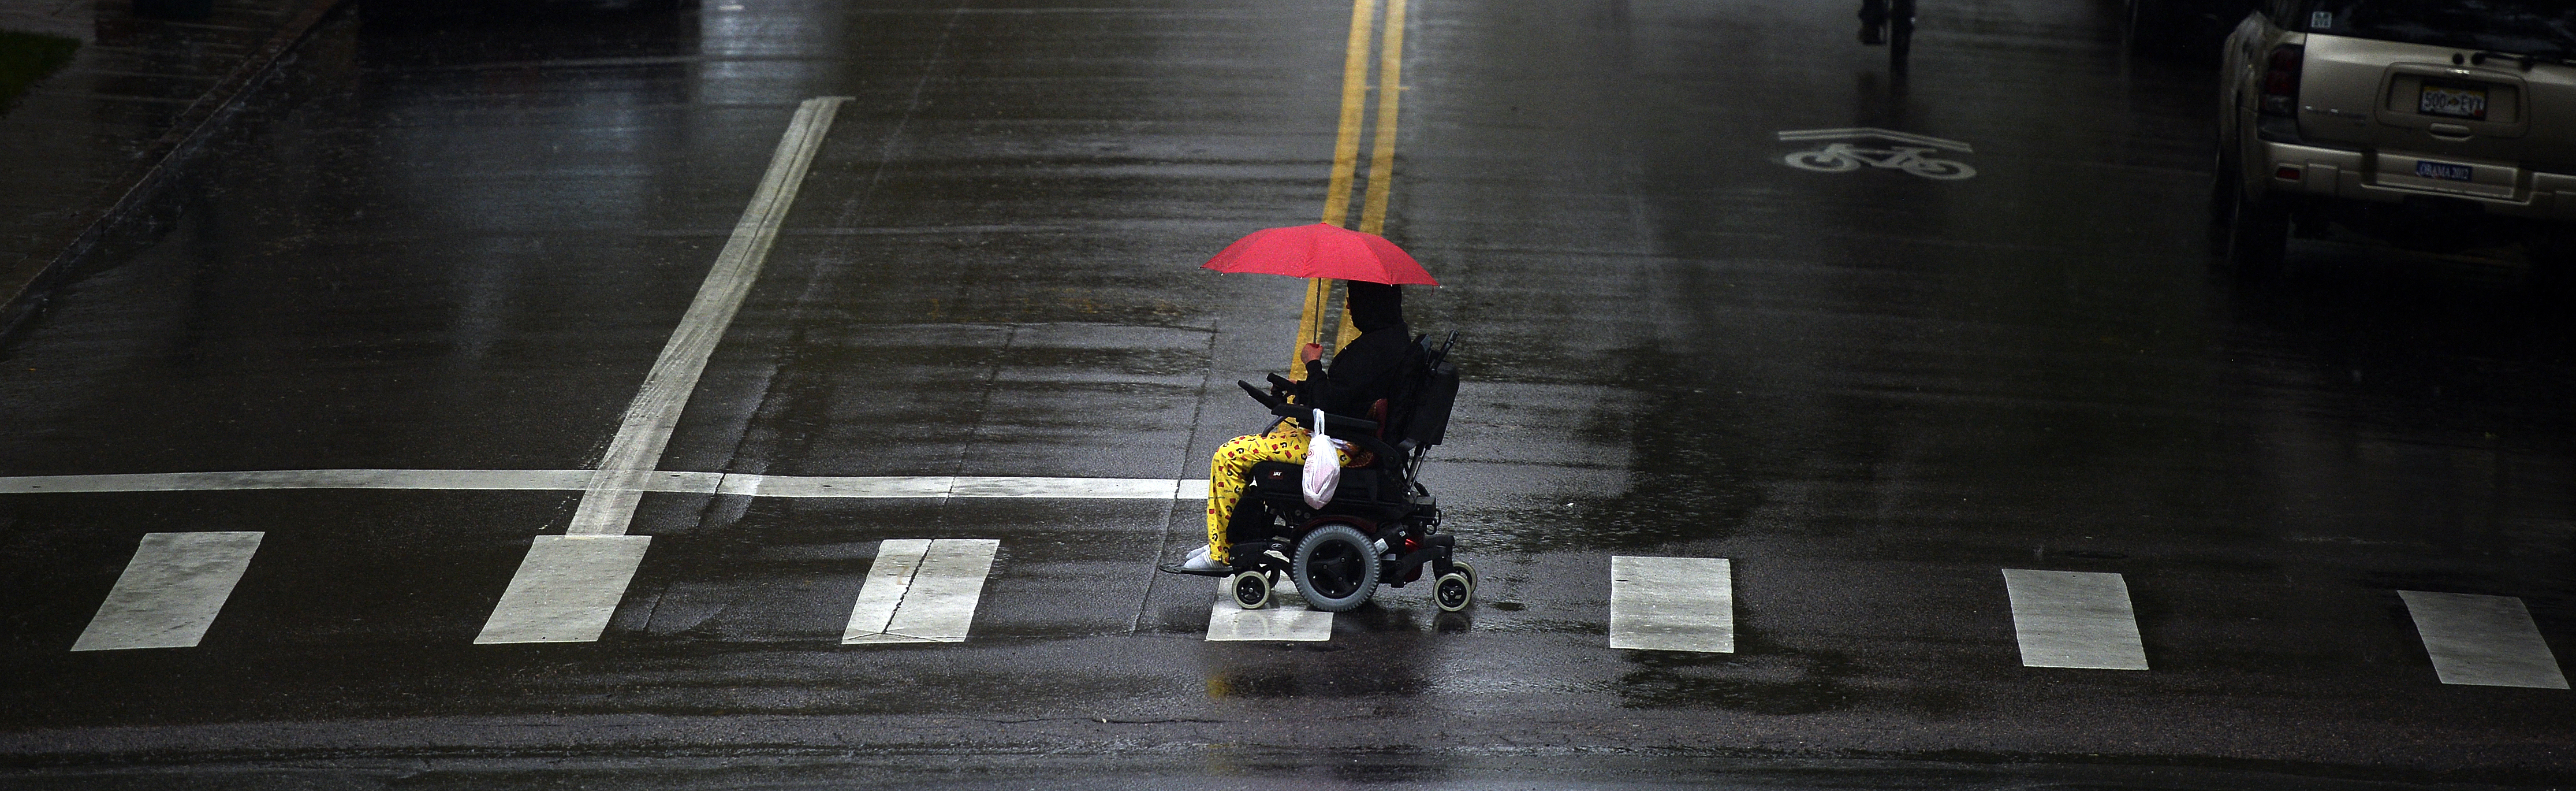 A person in a wheelchair has a red umbrella for protection as they cross Sherman Street at Colfax Ave across from the state capitol  in Denver on a rainy Tuesday.